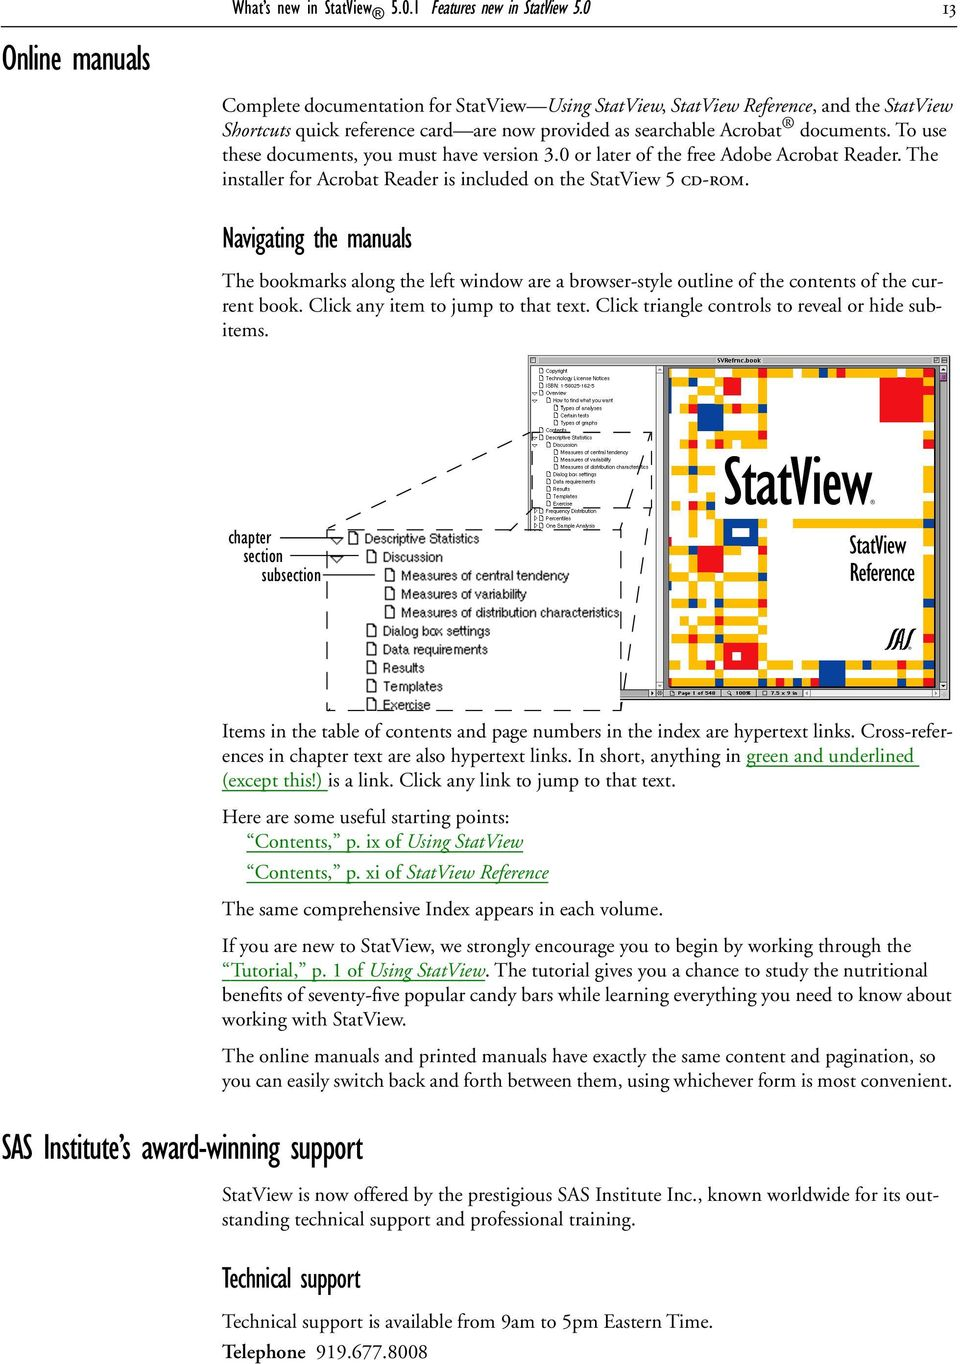 statview 5.01